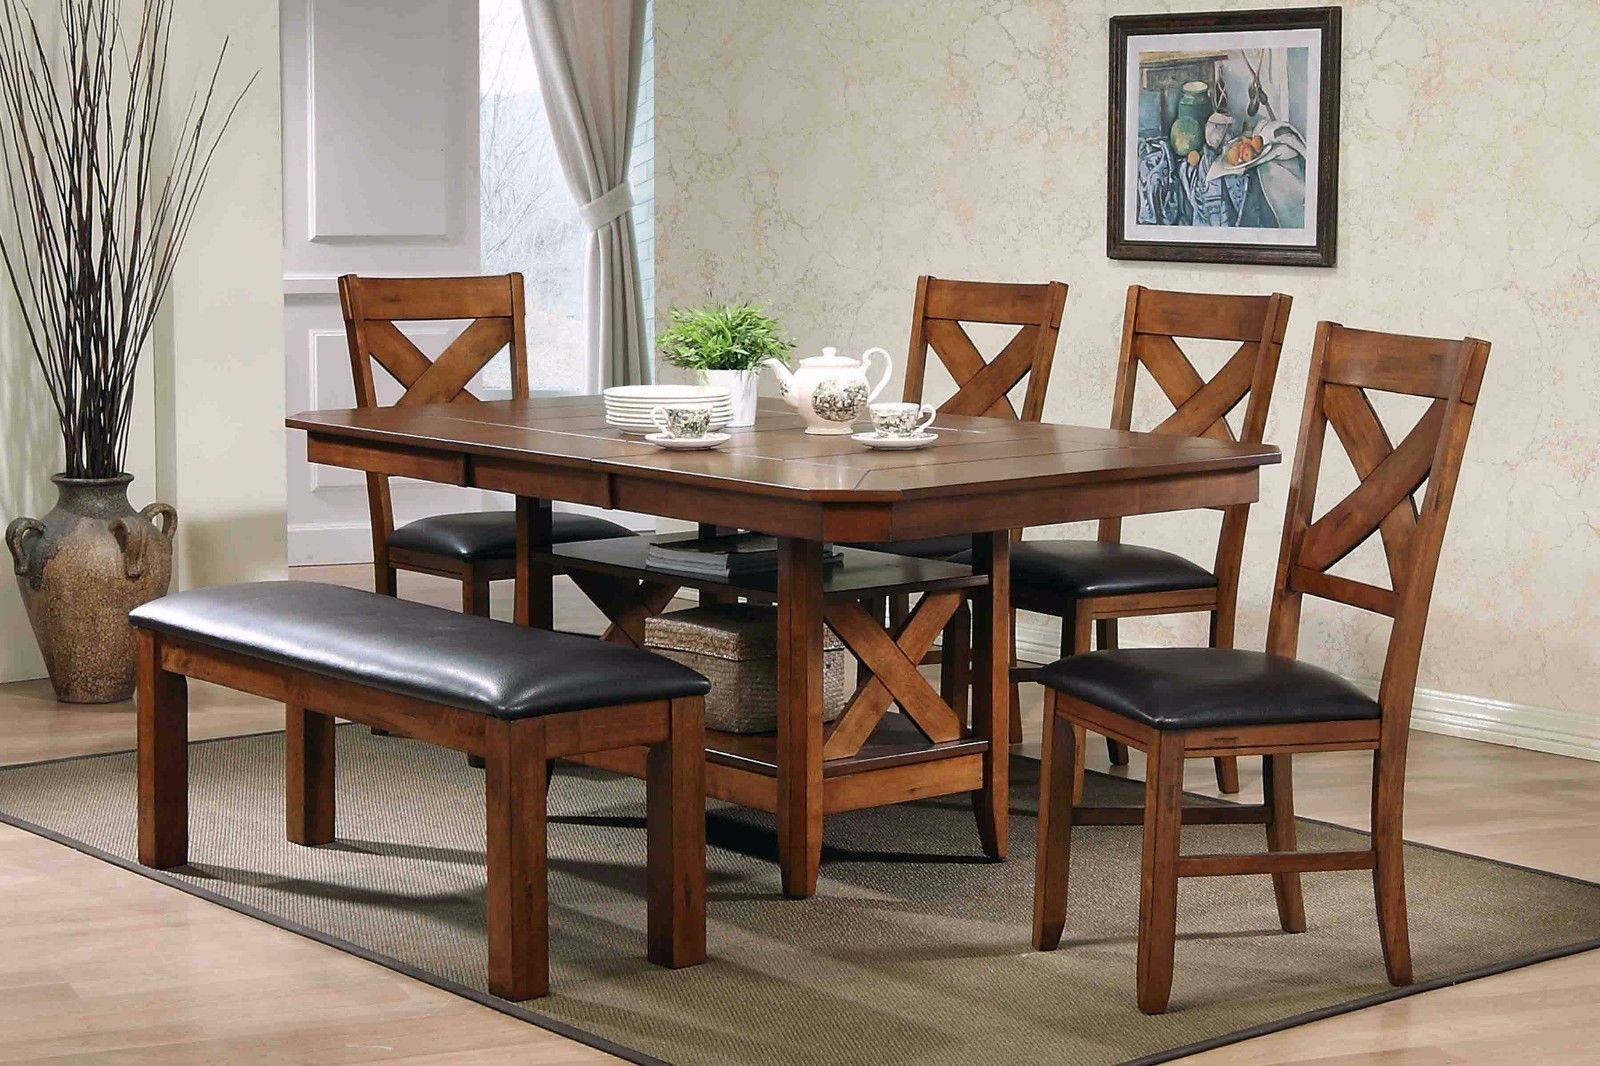 Mcferran LODGE Dining Room Set 5pc. Walnut Furnishings Contemporary Style